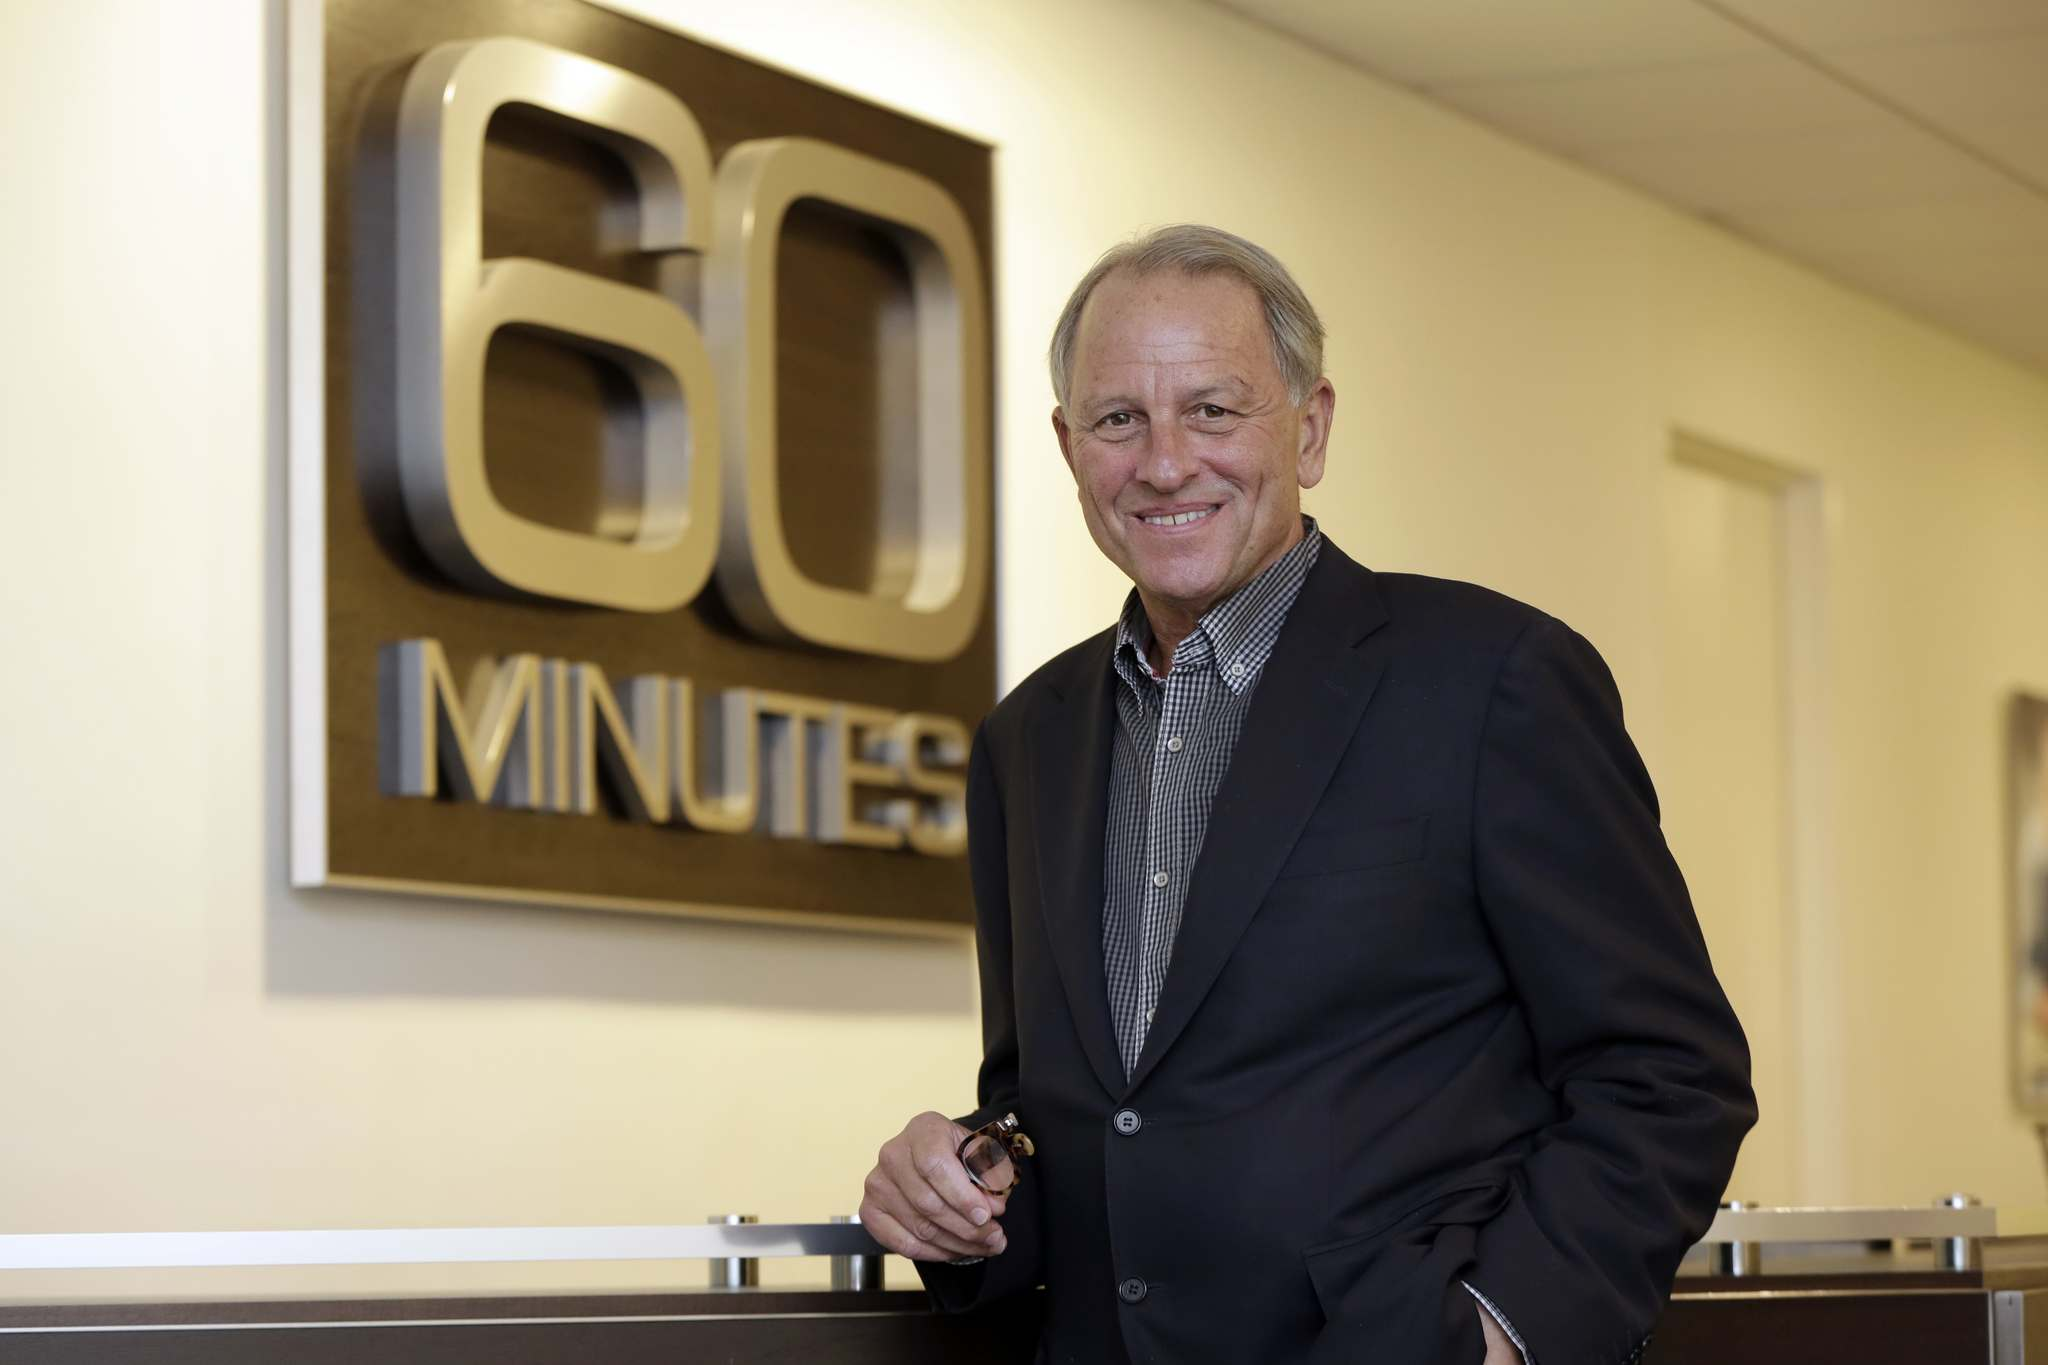 Richard Drew, File / The Associated Press</p><p>60 Minutes executive producer Jeff Fager stepped down after being named in reports about tolerating an abusive workplace.</p></p>